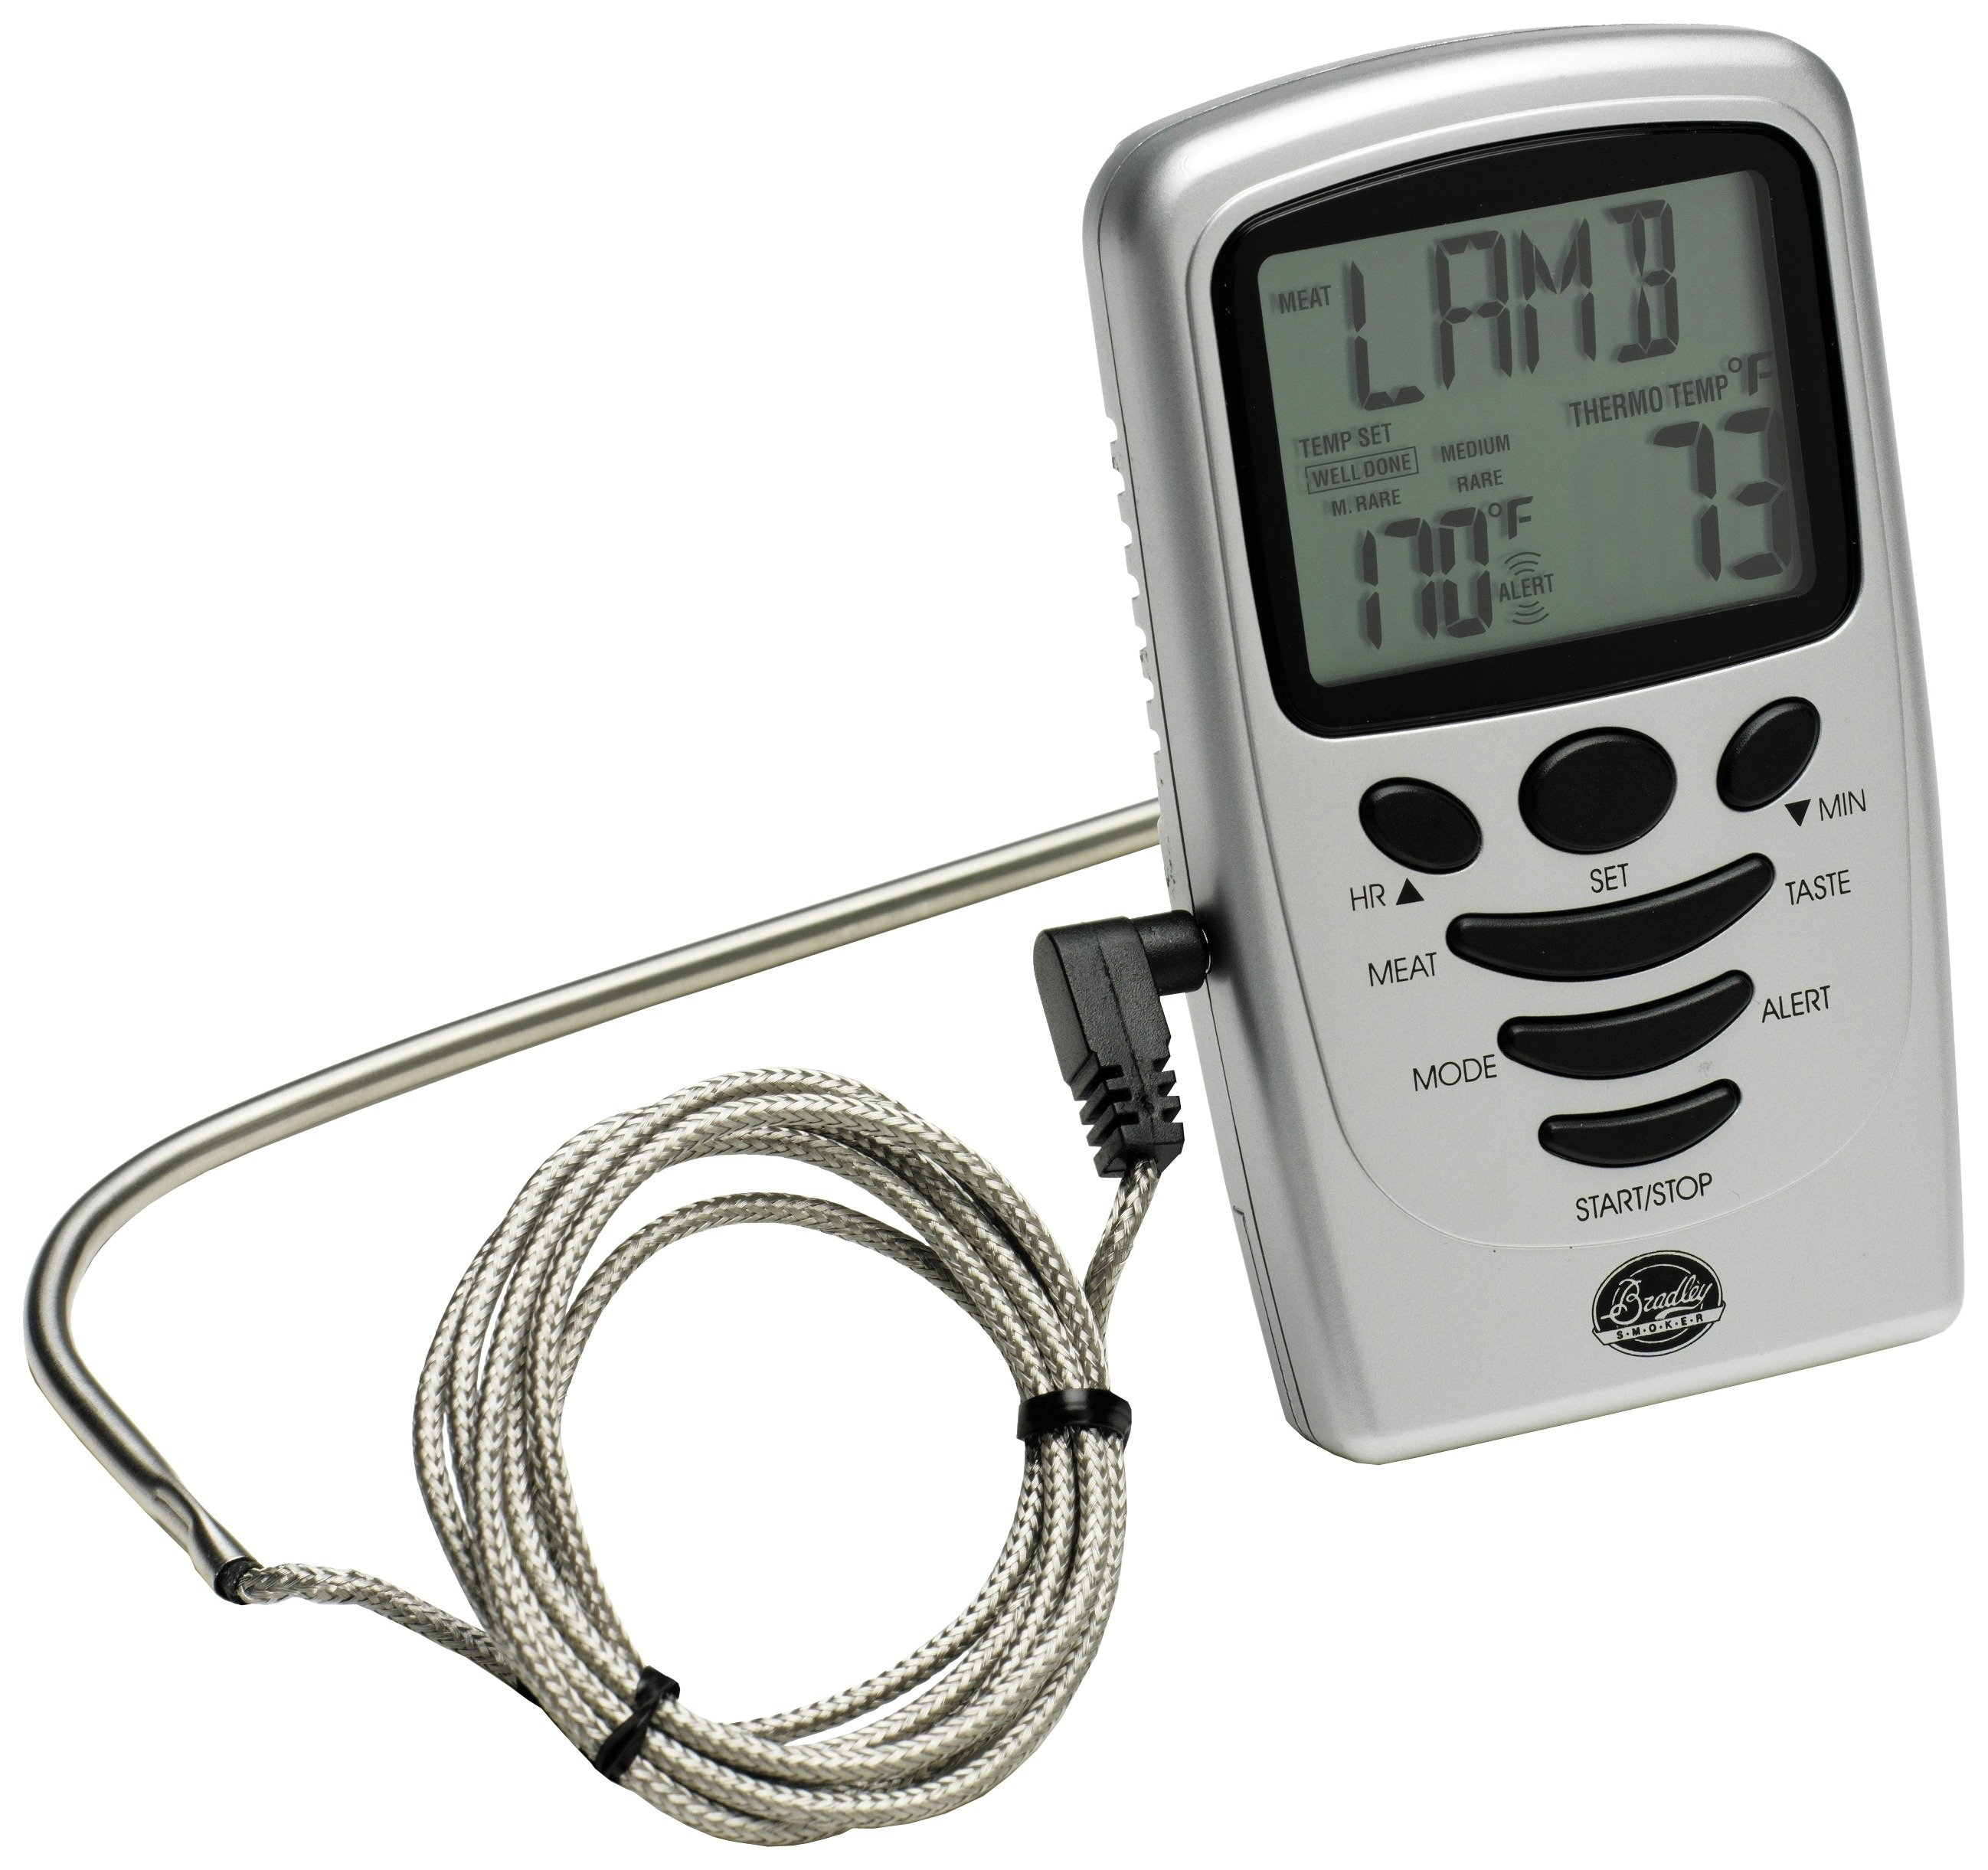 Image of Bradley Smoker - Digital Thermometer